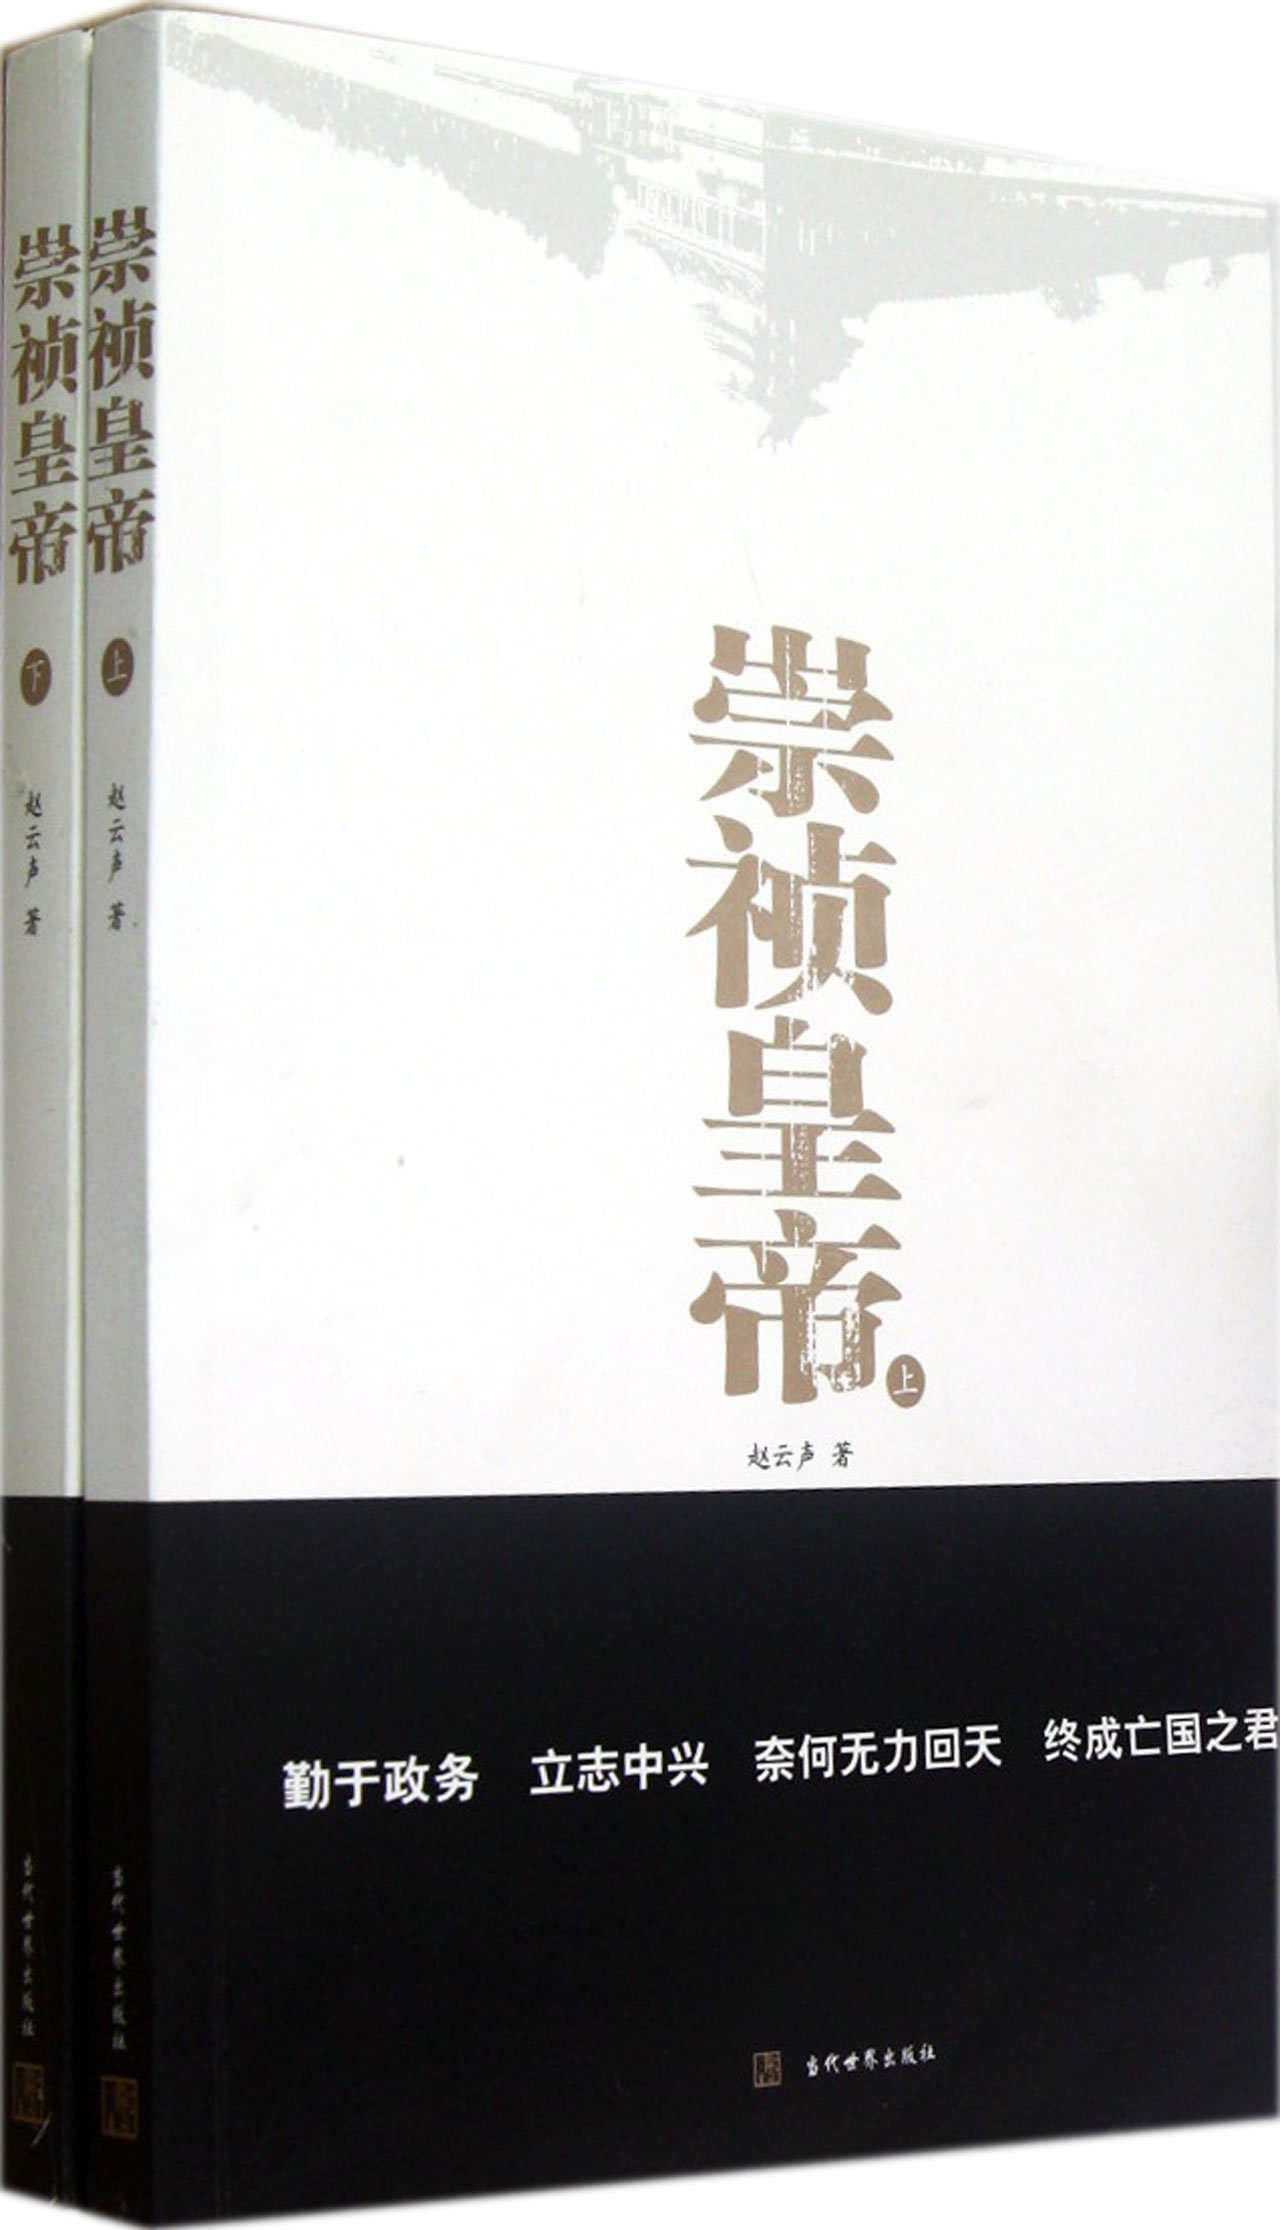 Download Emperor Chongzhen (Two Volumes in Total) (Chinese Edition) PDF